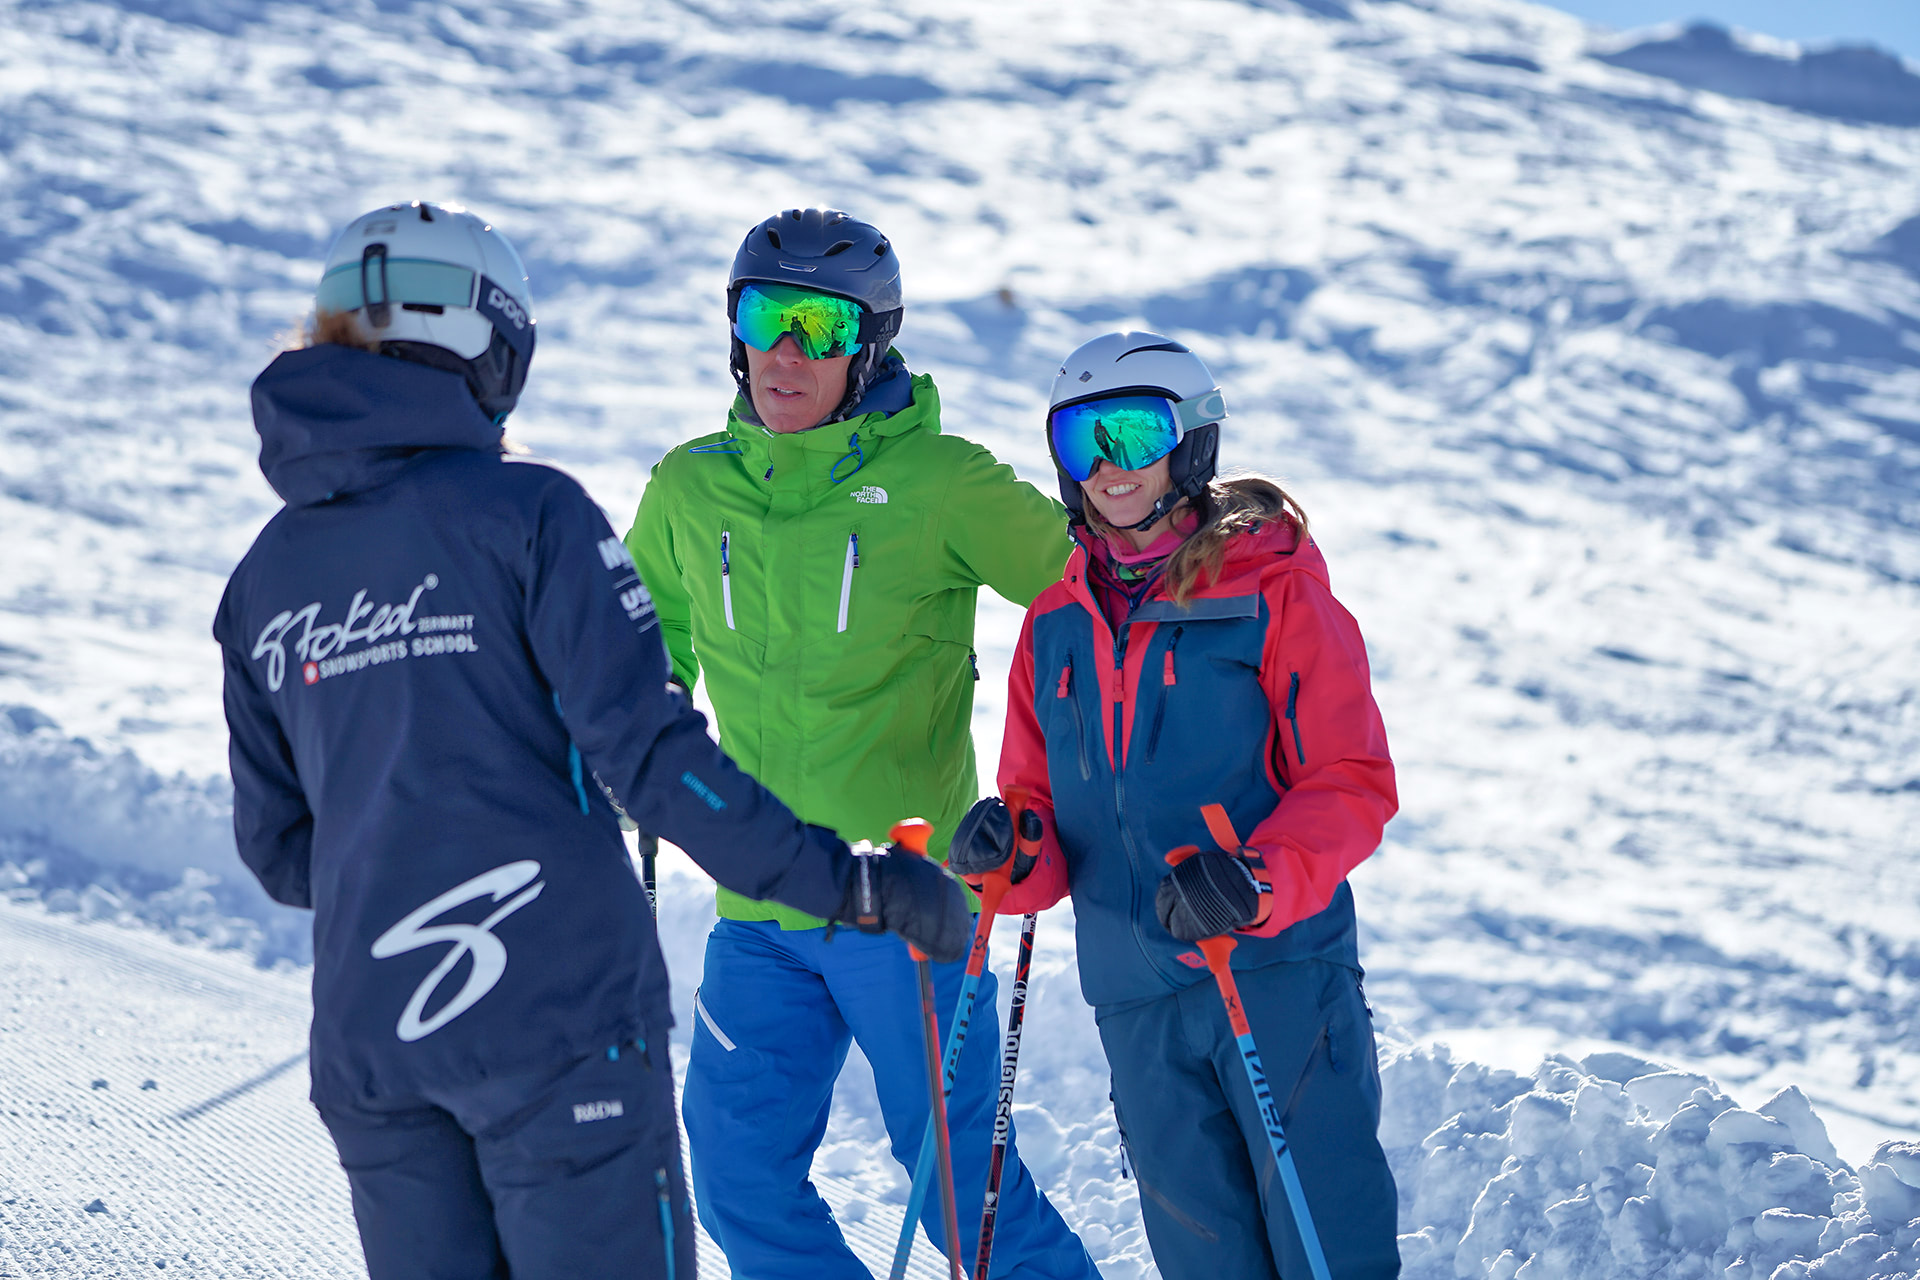 ski and snowboard lessons in Stoked ski school Zermatt